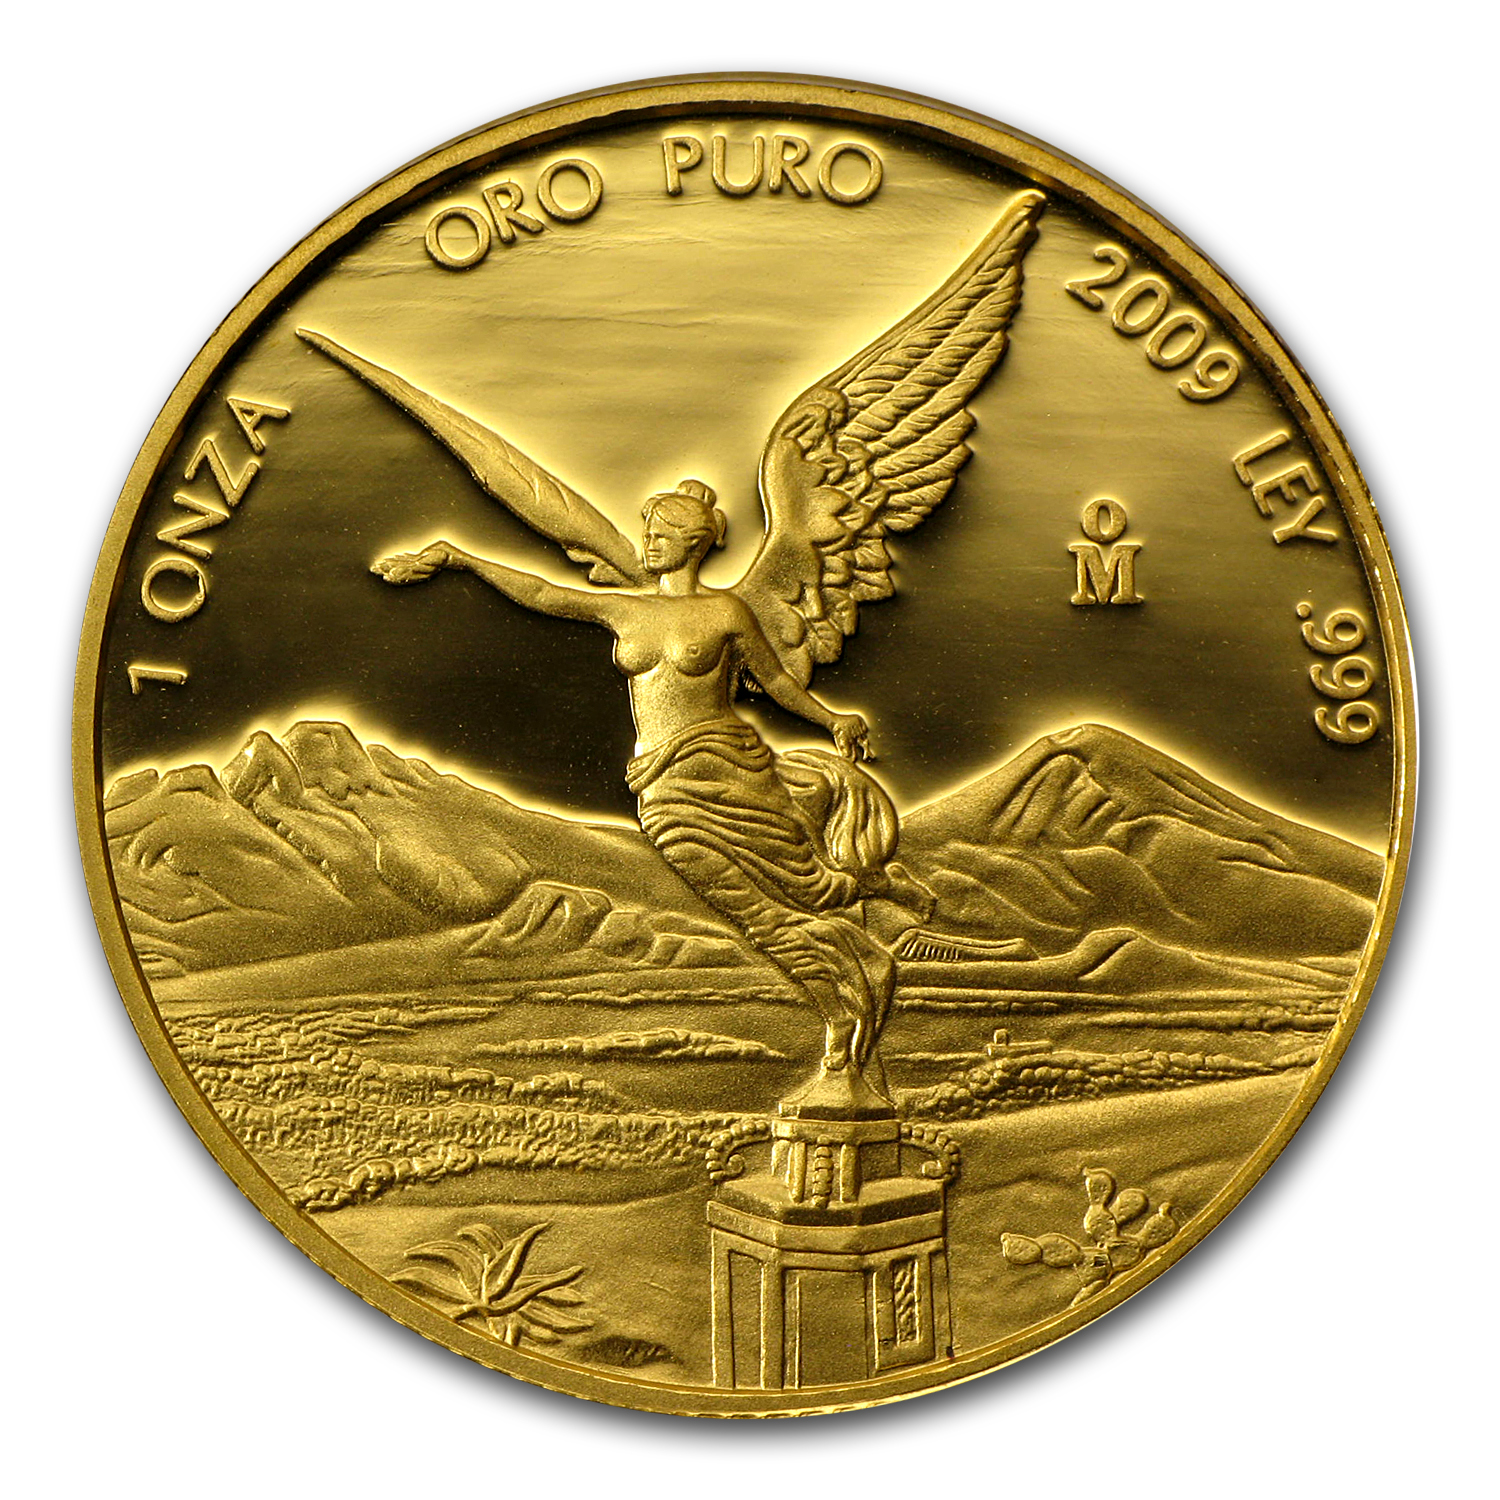 2009 Mexico 1 oz Proof Gold Libertad